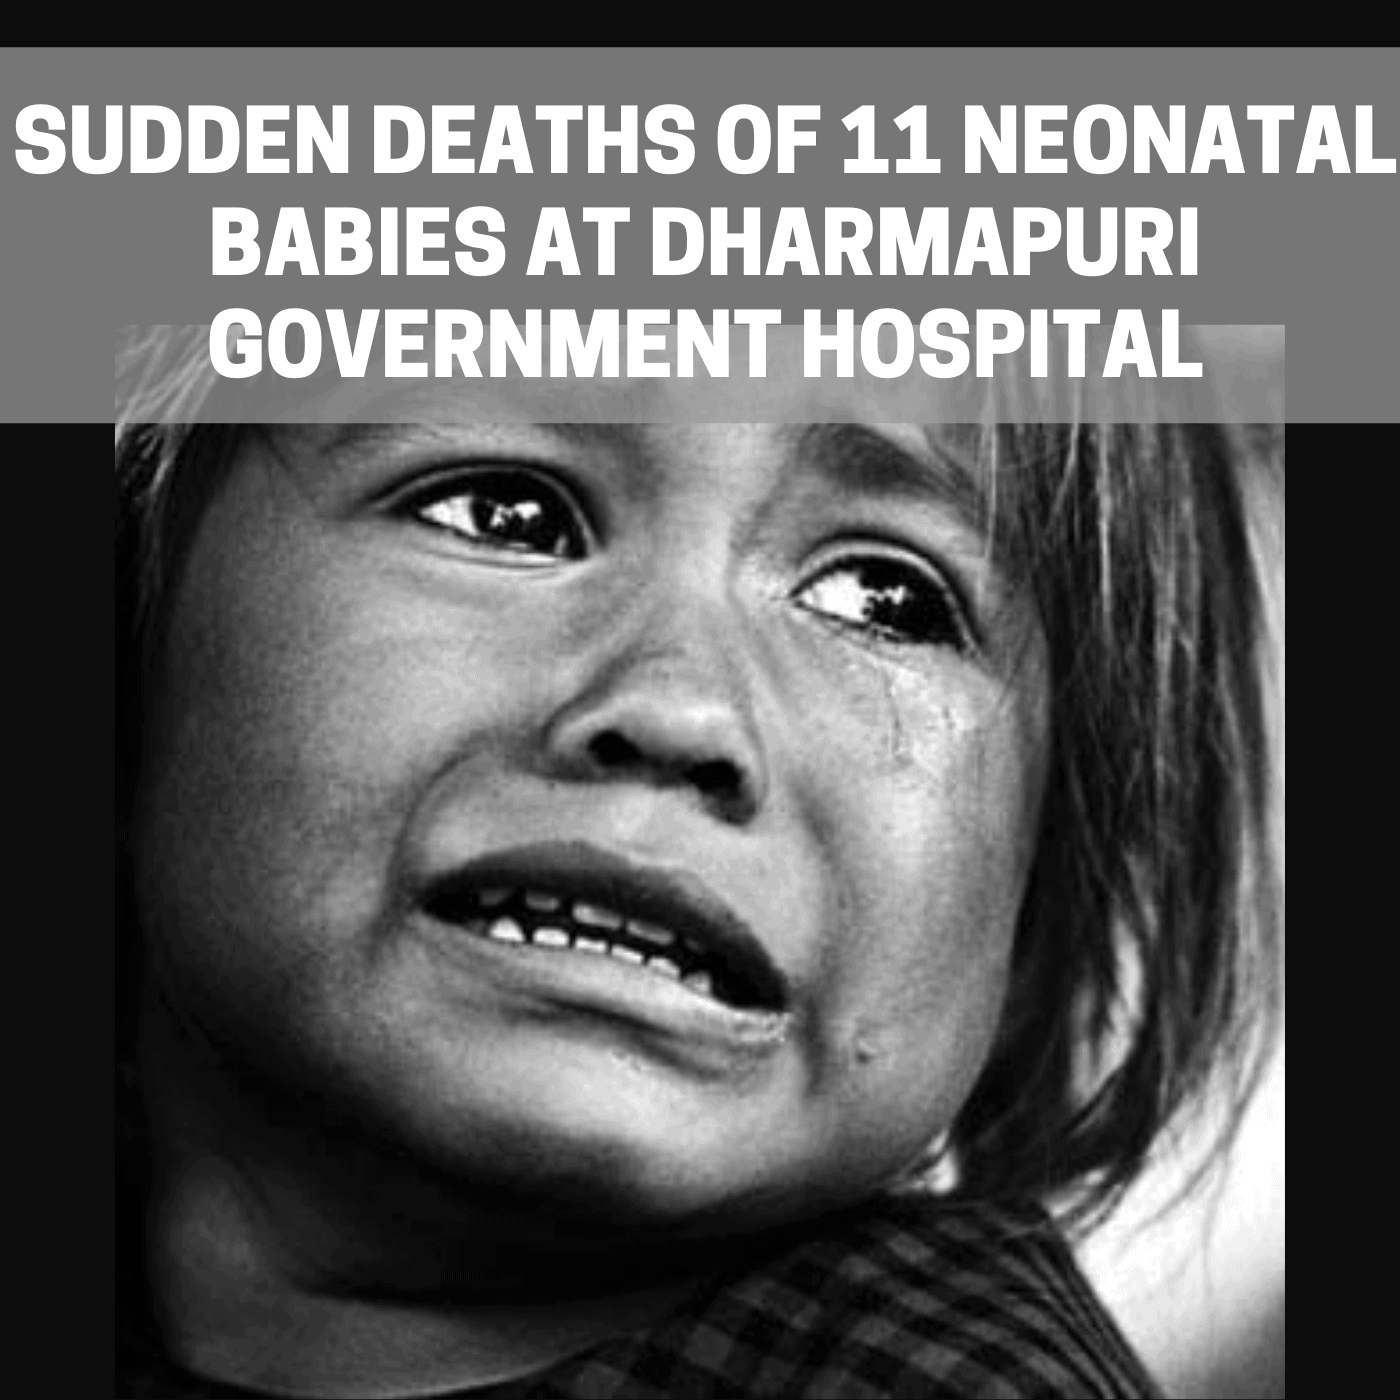 Fact Finding: Sudden deaths of 11 Neonatal babies at Dharmapuri Government Hospital